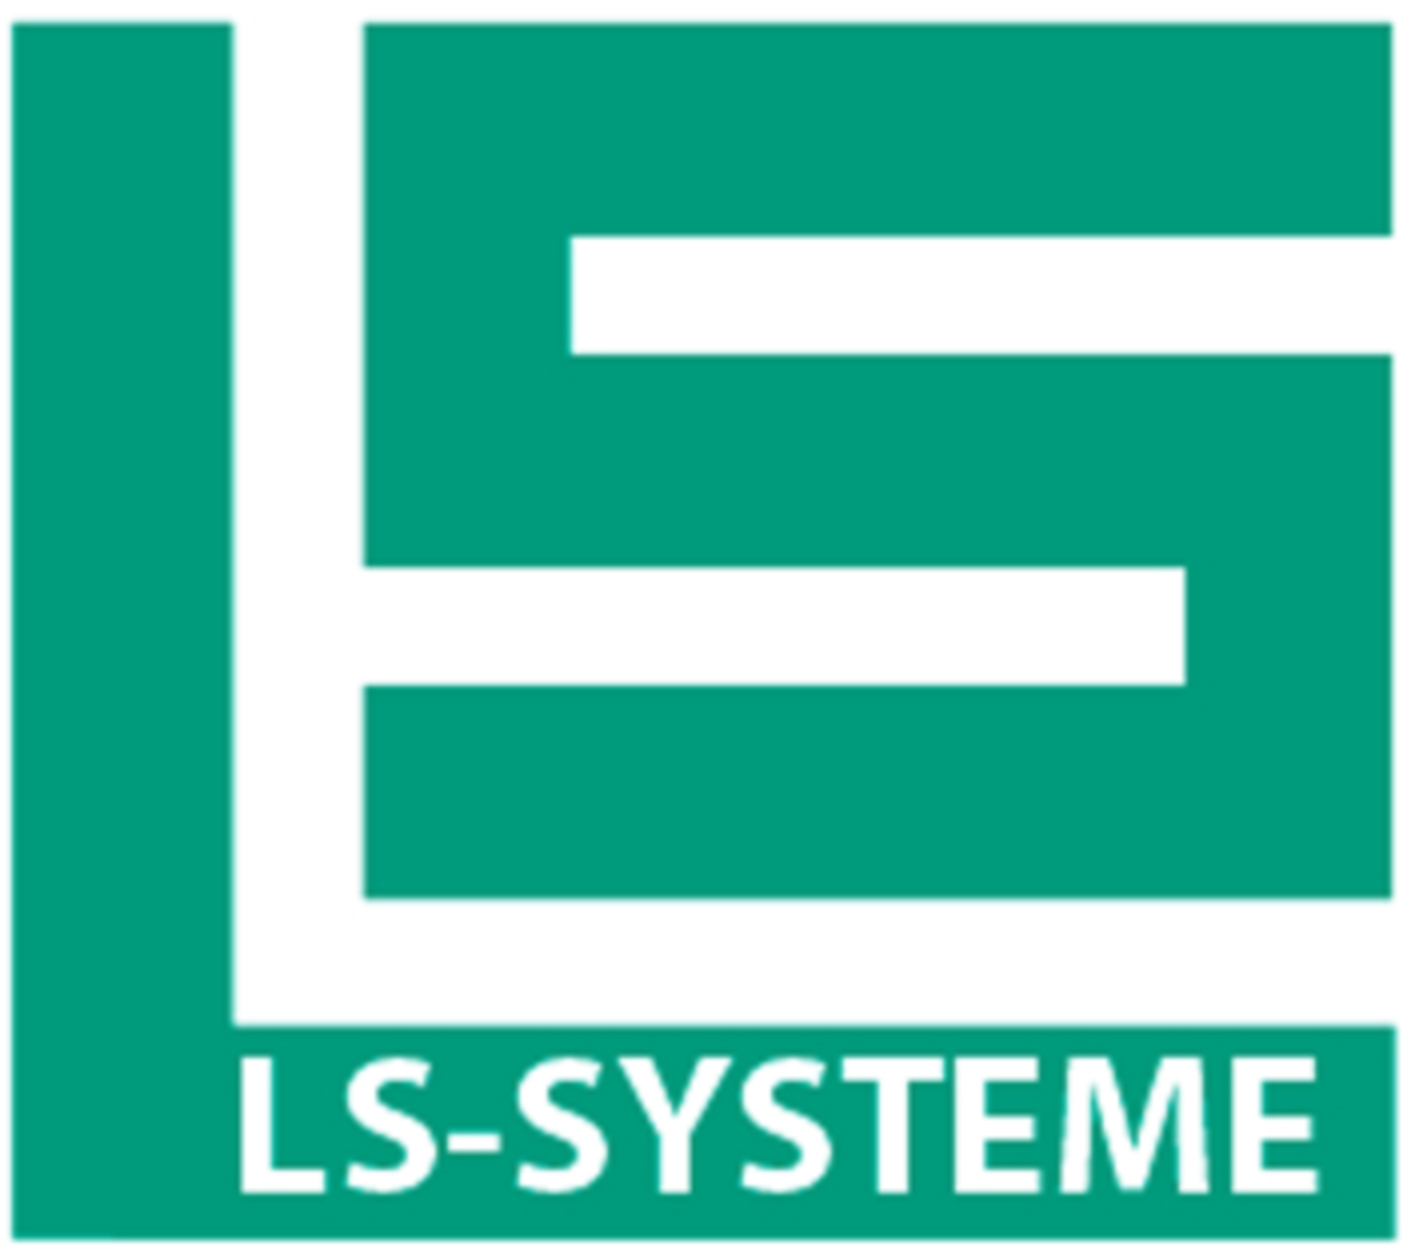 LS-Systeme